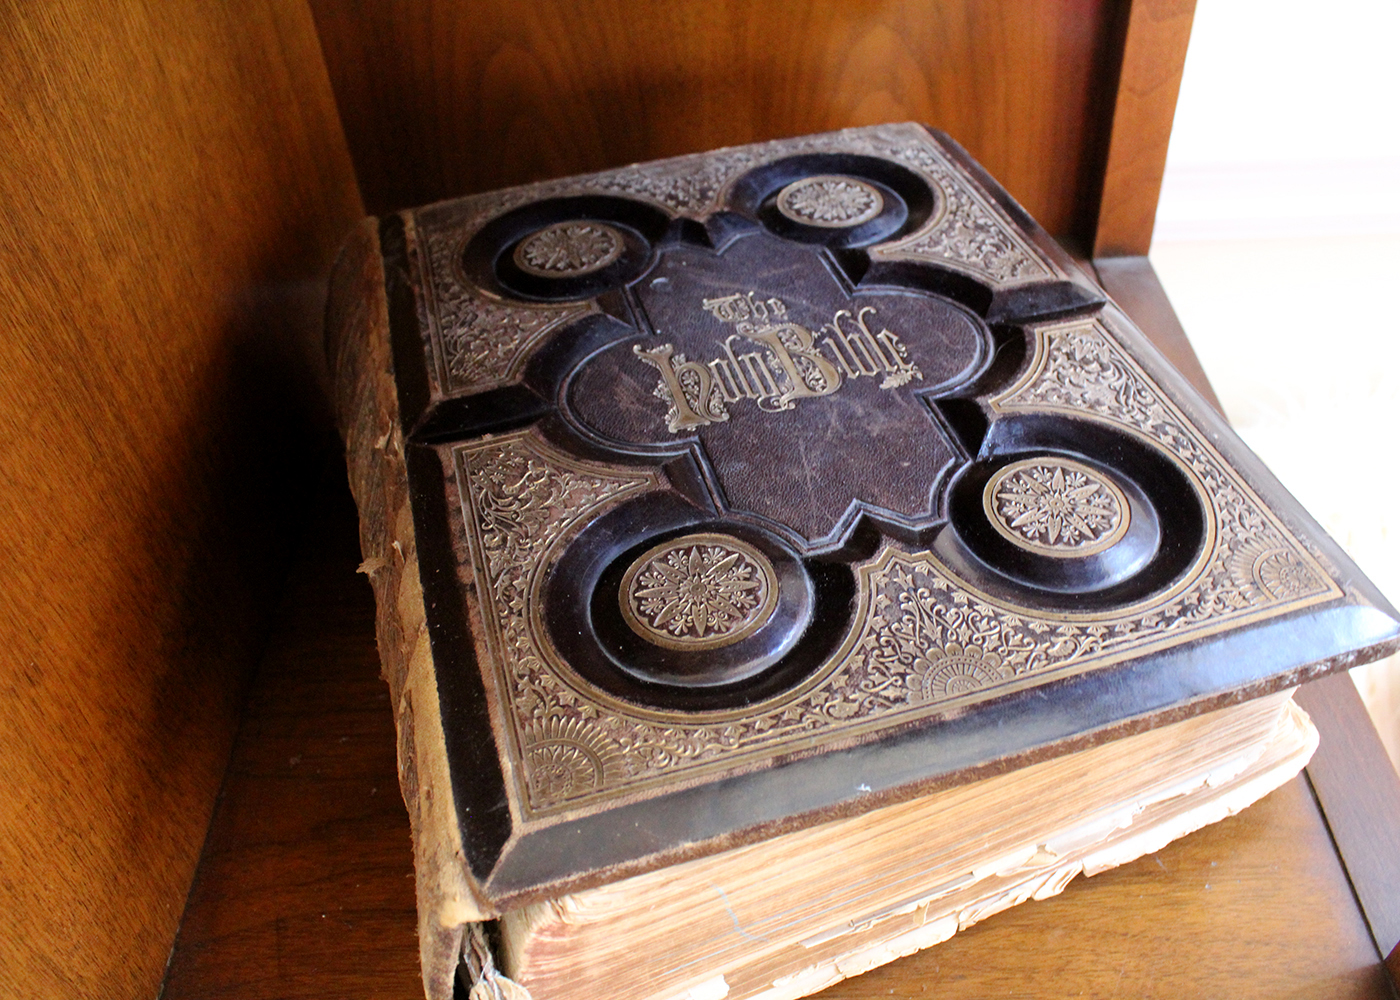 family Bible from the 1870s